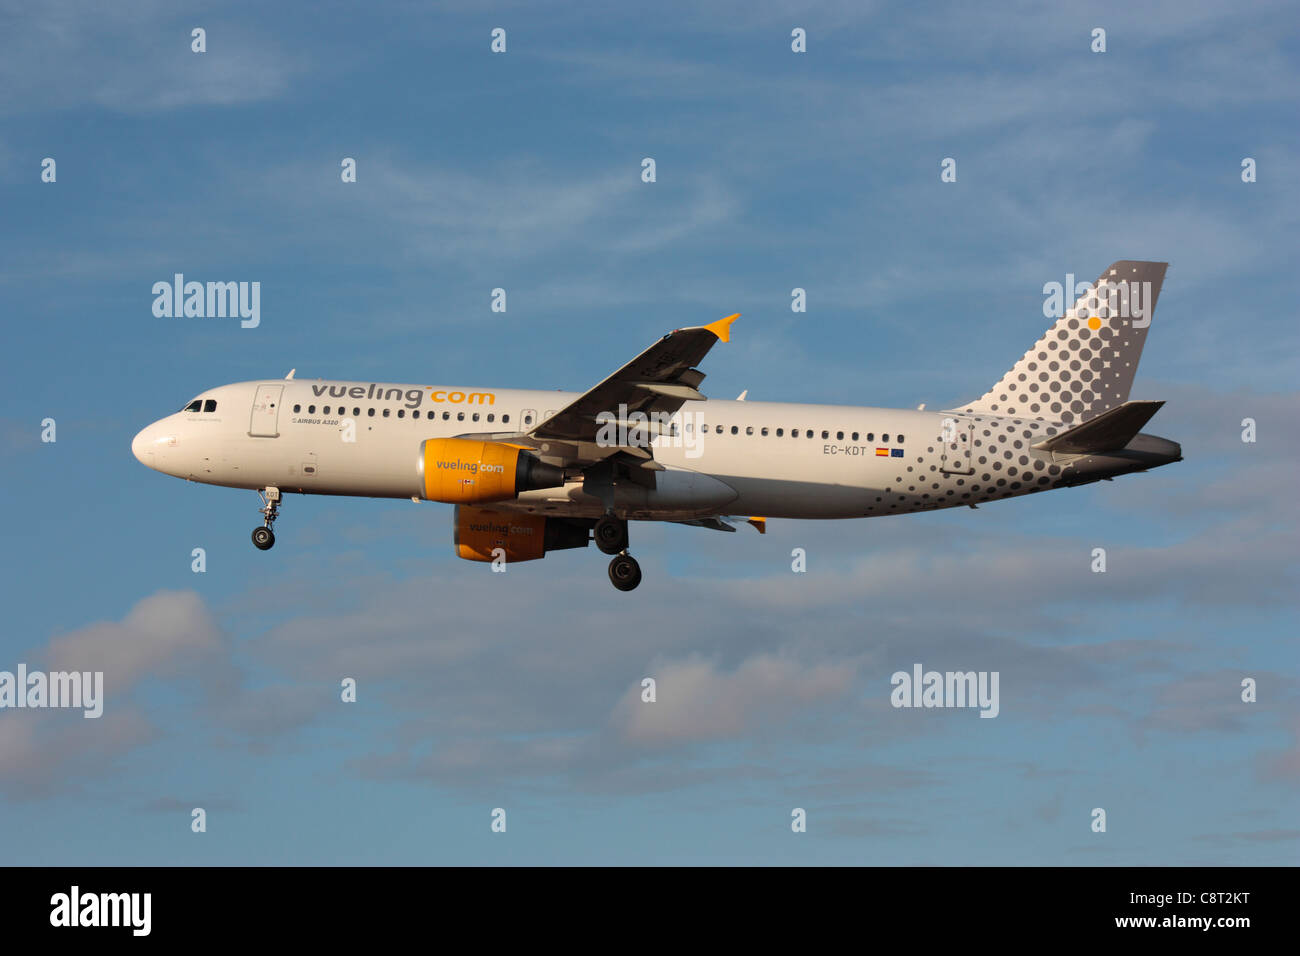 Airbus A320 passenger jet aircraft belonging to Spanish low-cost airline Vueling flying on approach. Side view. - Stock Image